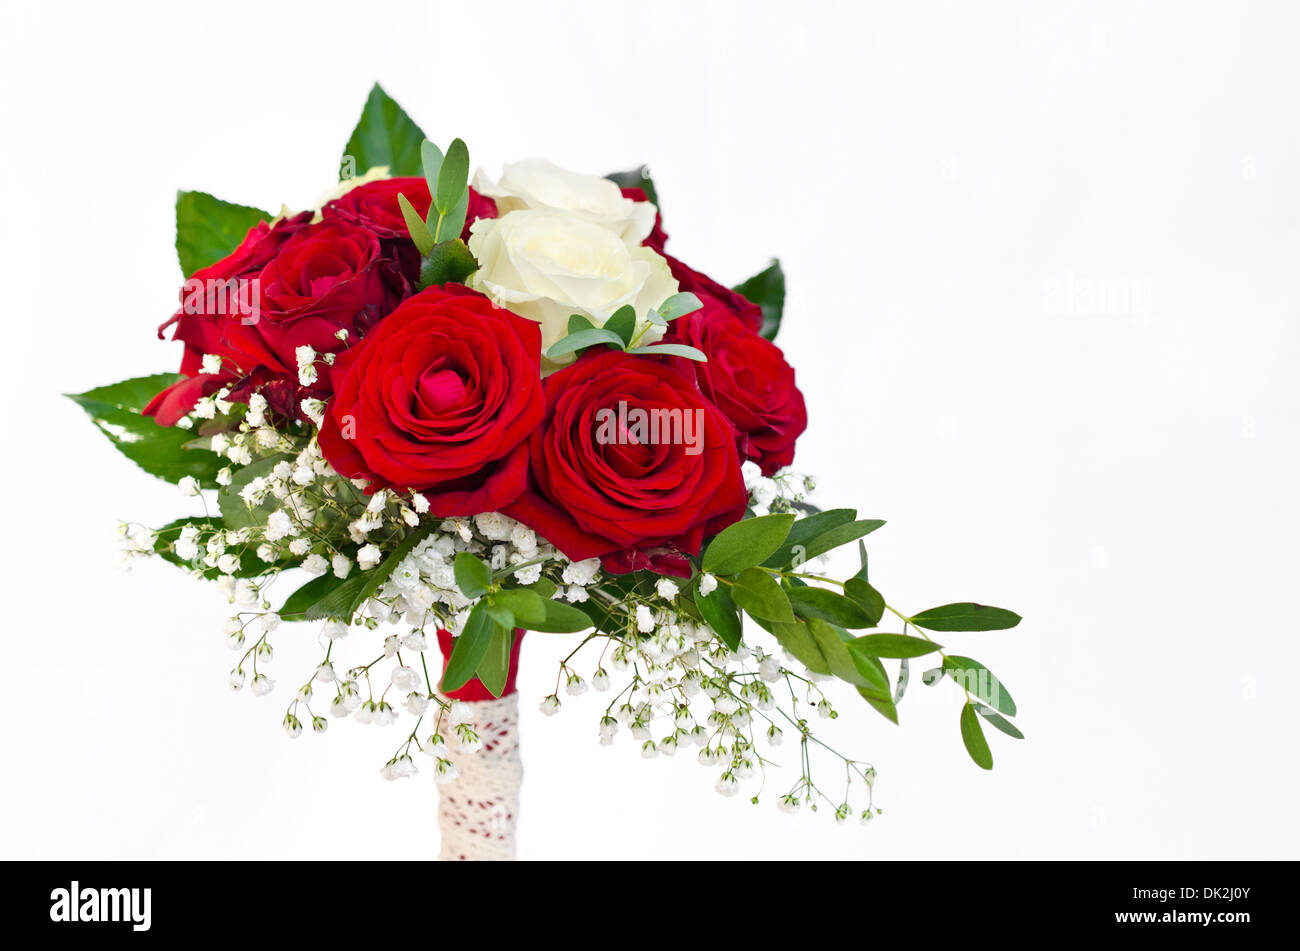 Bridal Red Wedding Bouquet High Resolution Stock Photography And Images Alamy